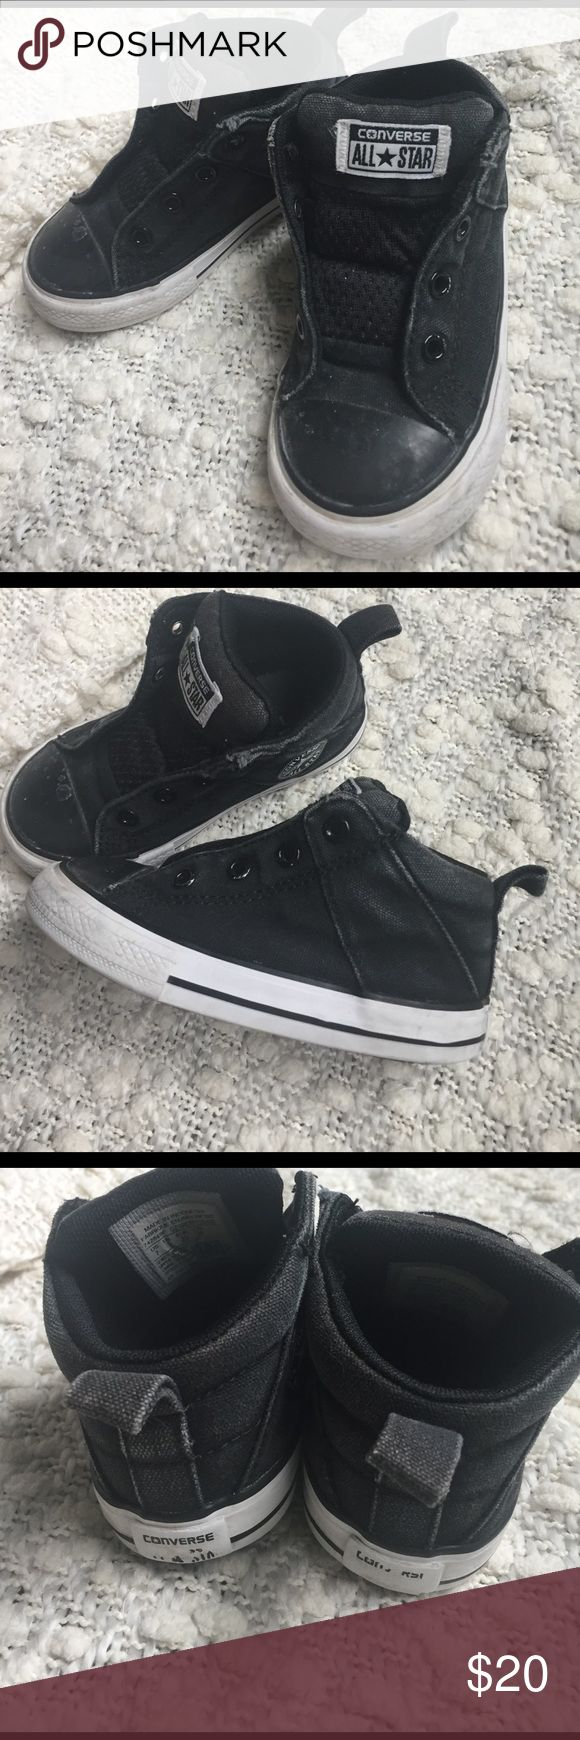 No time to lace converse slip ons! Size 7 toddler Good used Condition! Signs of wear but lots of life left!! So cute! Converse Shoes Sneakers